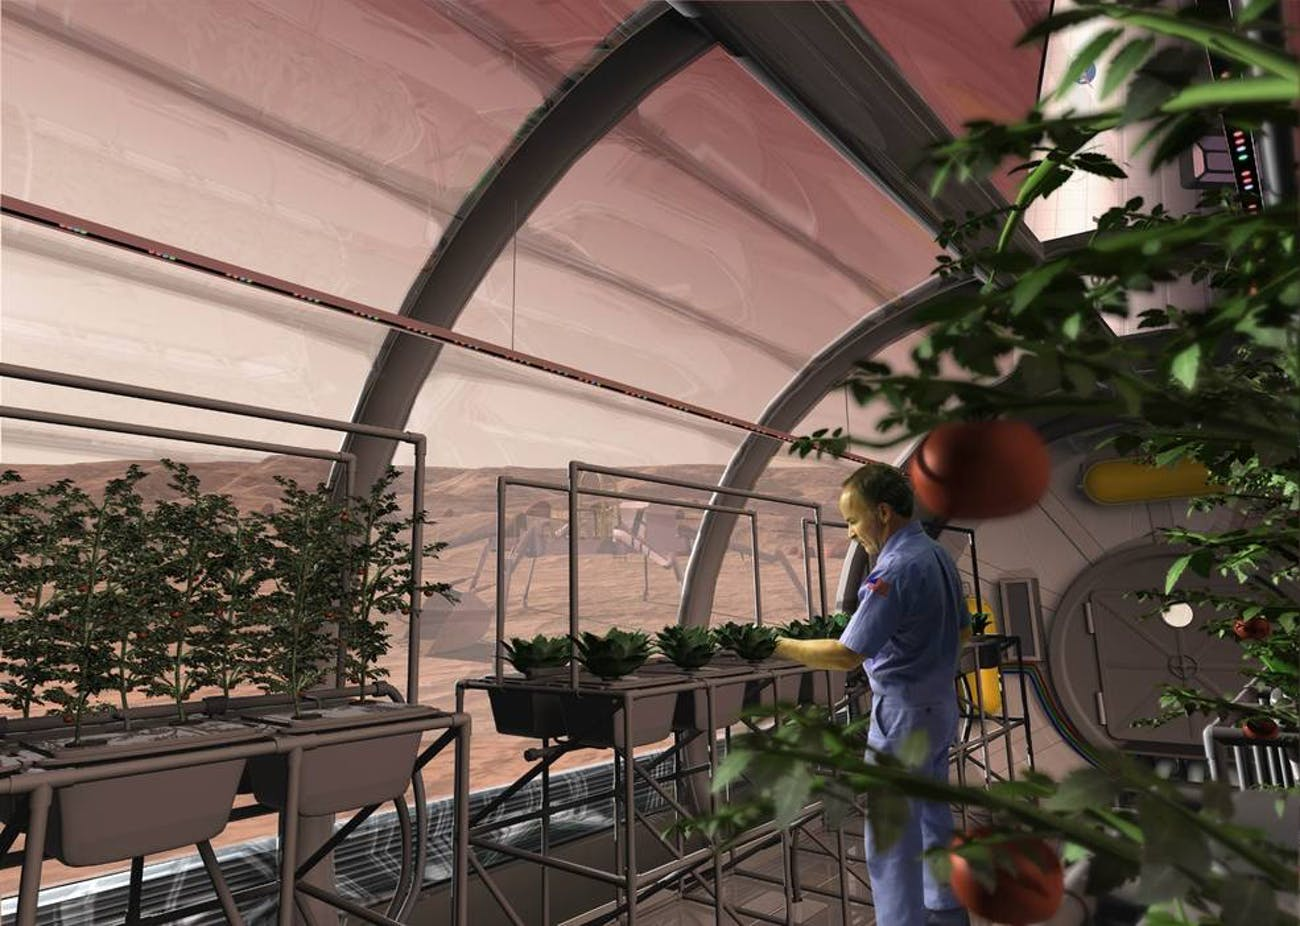 NASA's vision of hydroponics on Mars.